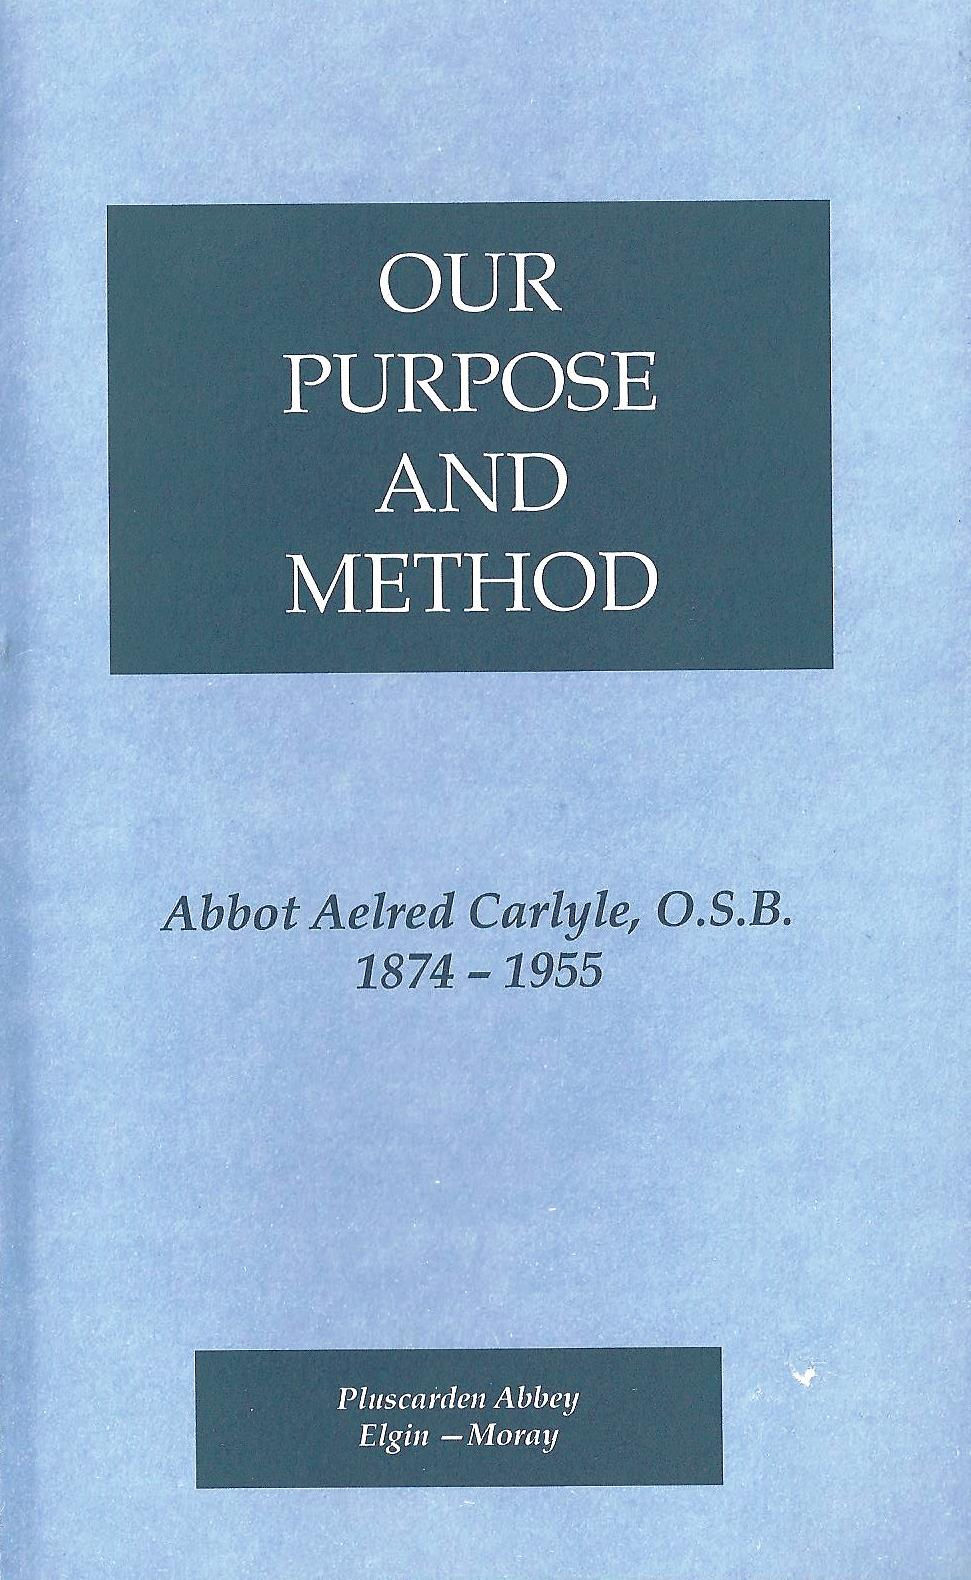 our purpose essay The purpose of life as understood by the believing muslim can be simply stated in only two (2) words: obey god our only purpose and salvation lie in these two words.